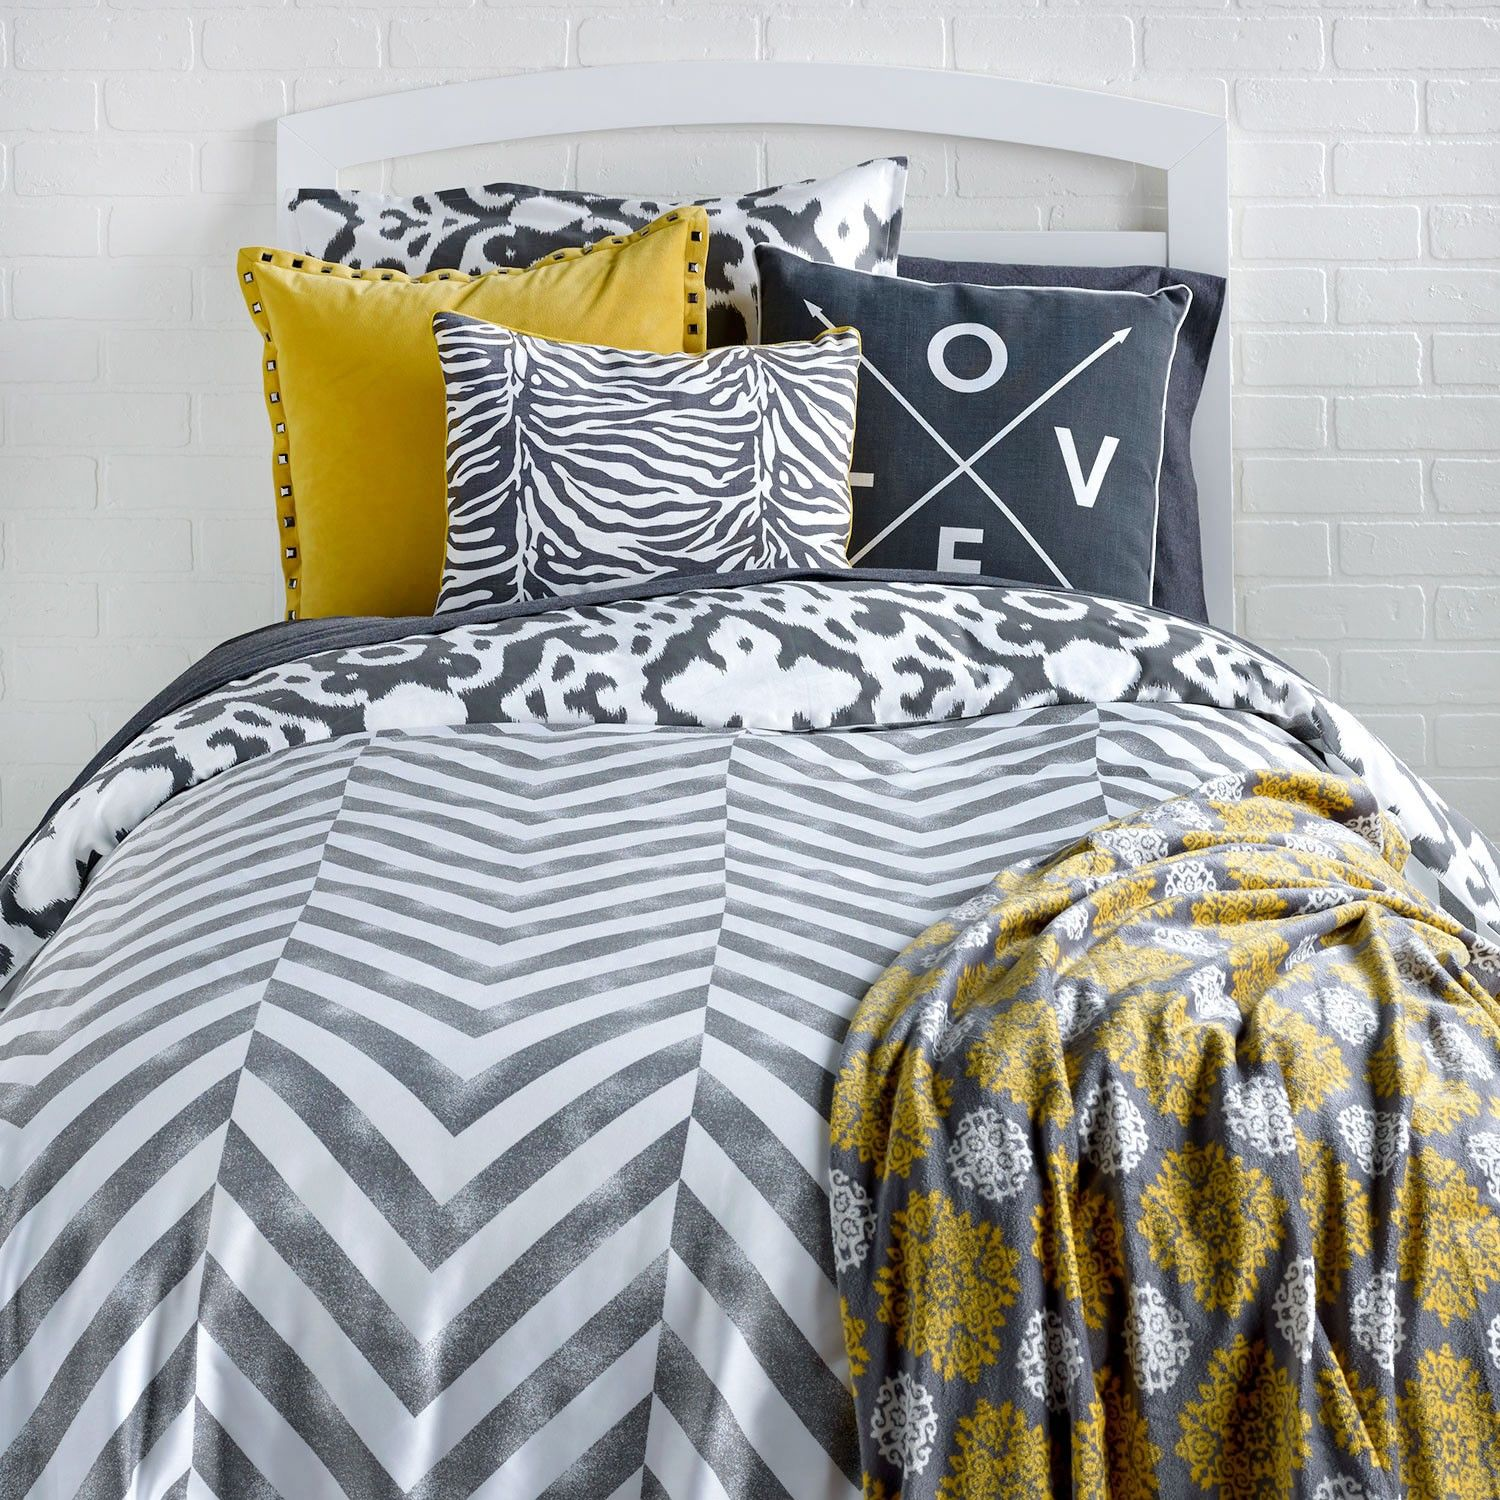 A Vivid Charcoal Color Is Printed On A Crisp White Cotton